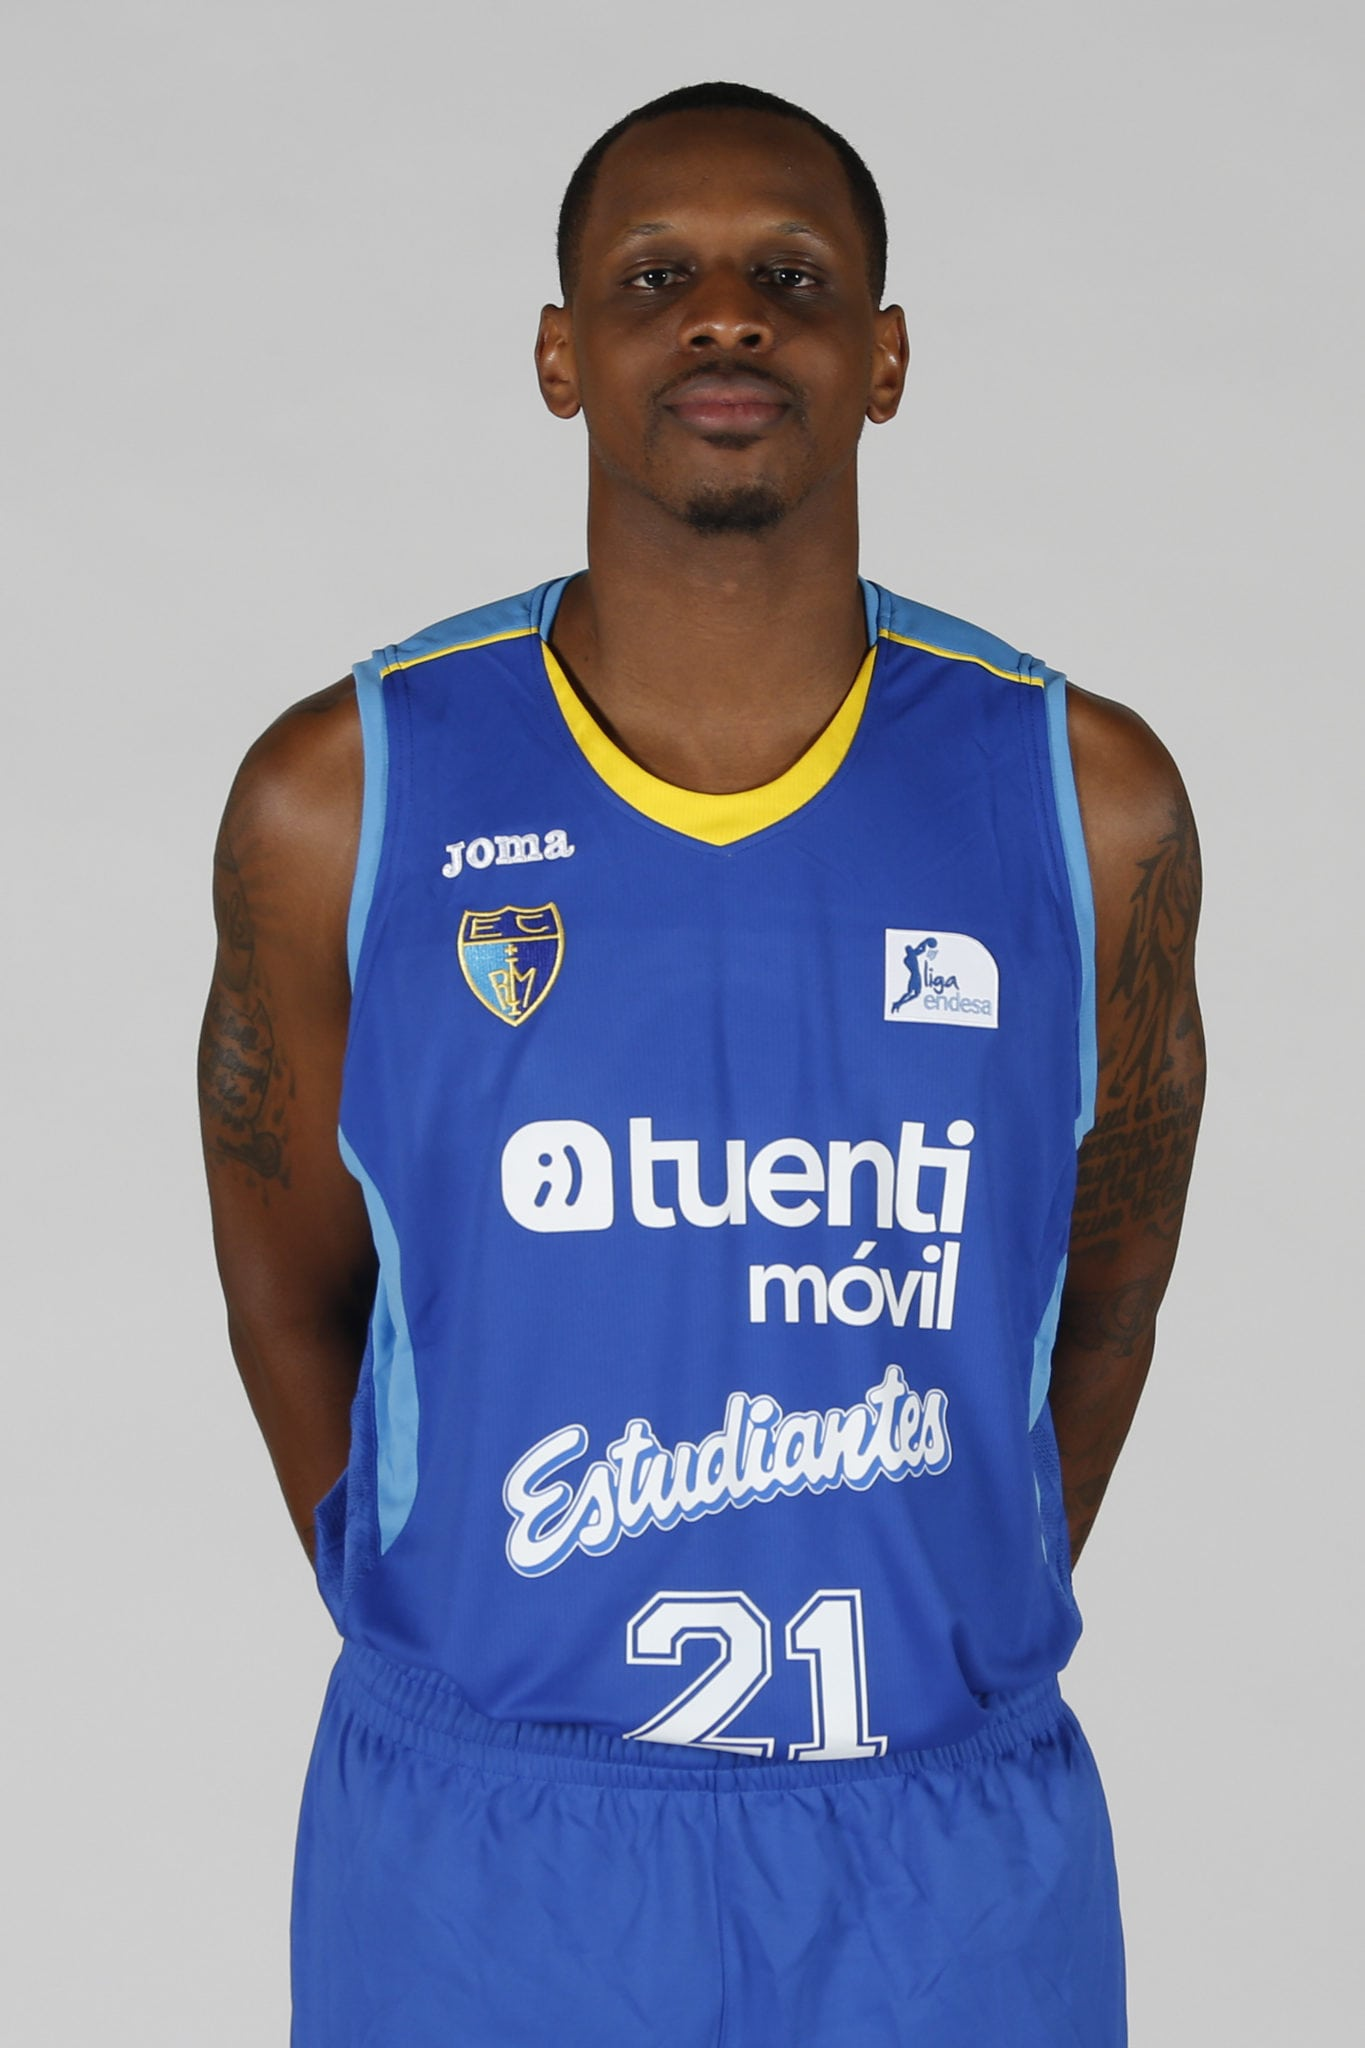 21. James Nunnally